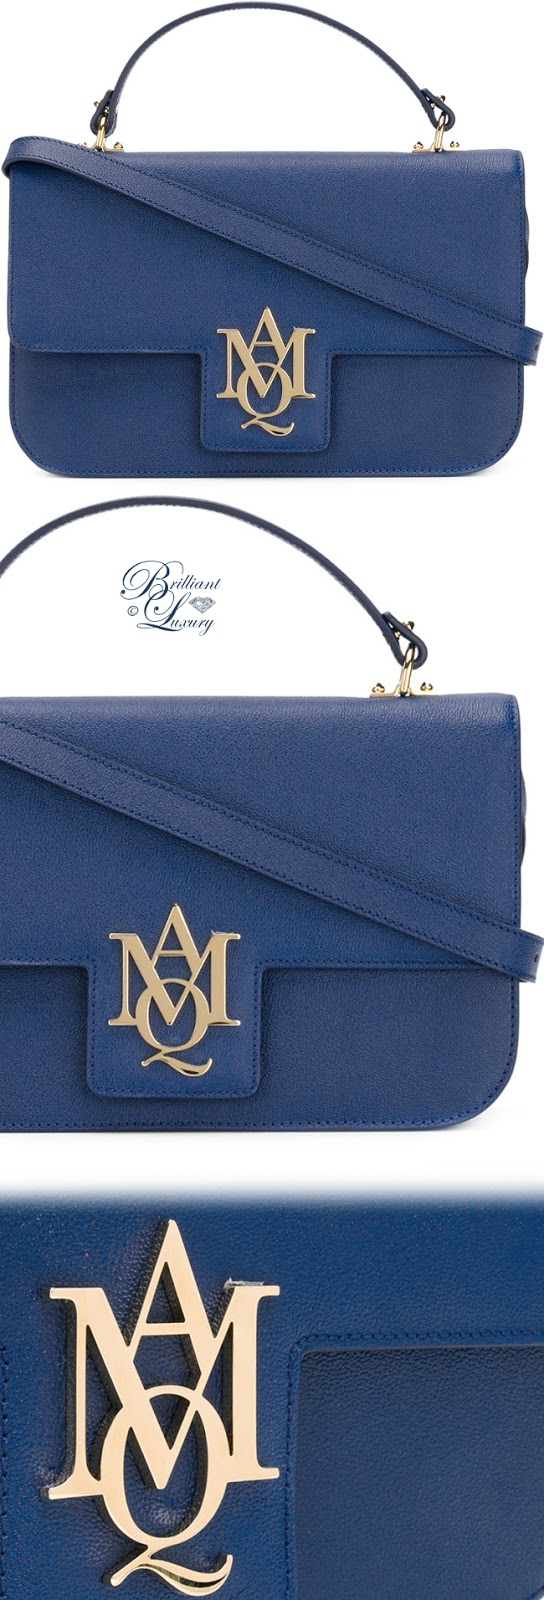 Brilliant Luxury ♦ Alexander McQueen Insignia Satchel #blue